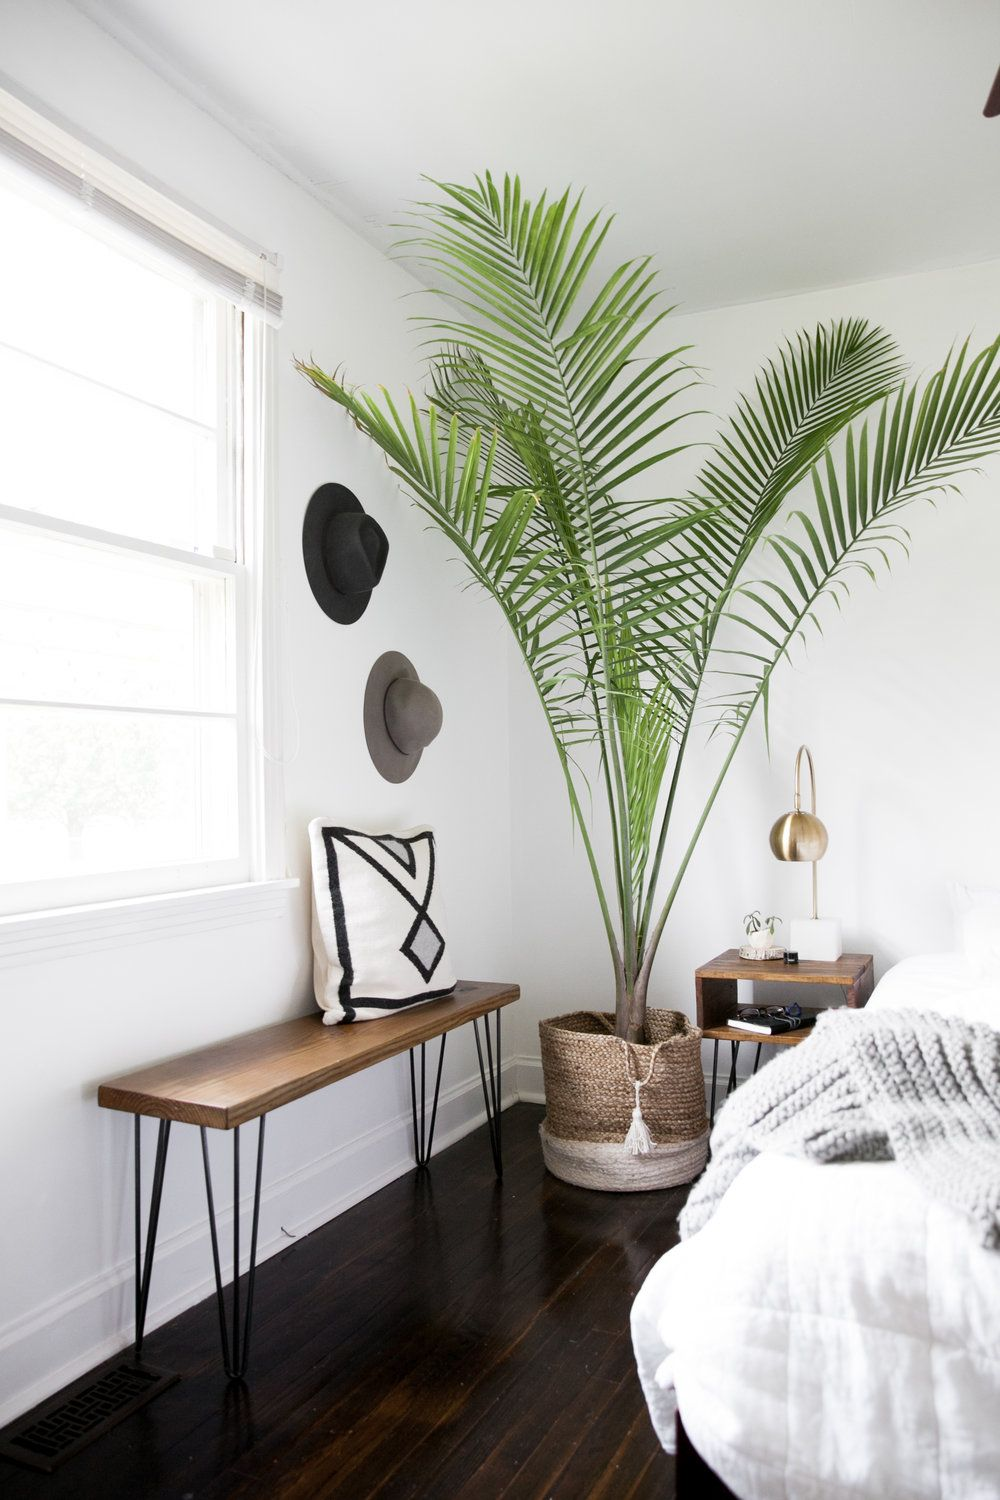 Lisadiederichphotography apartmenttherapyhometour Interior design plants inside house